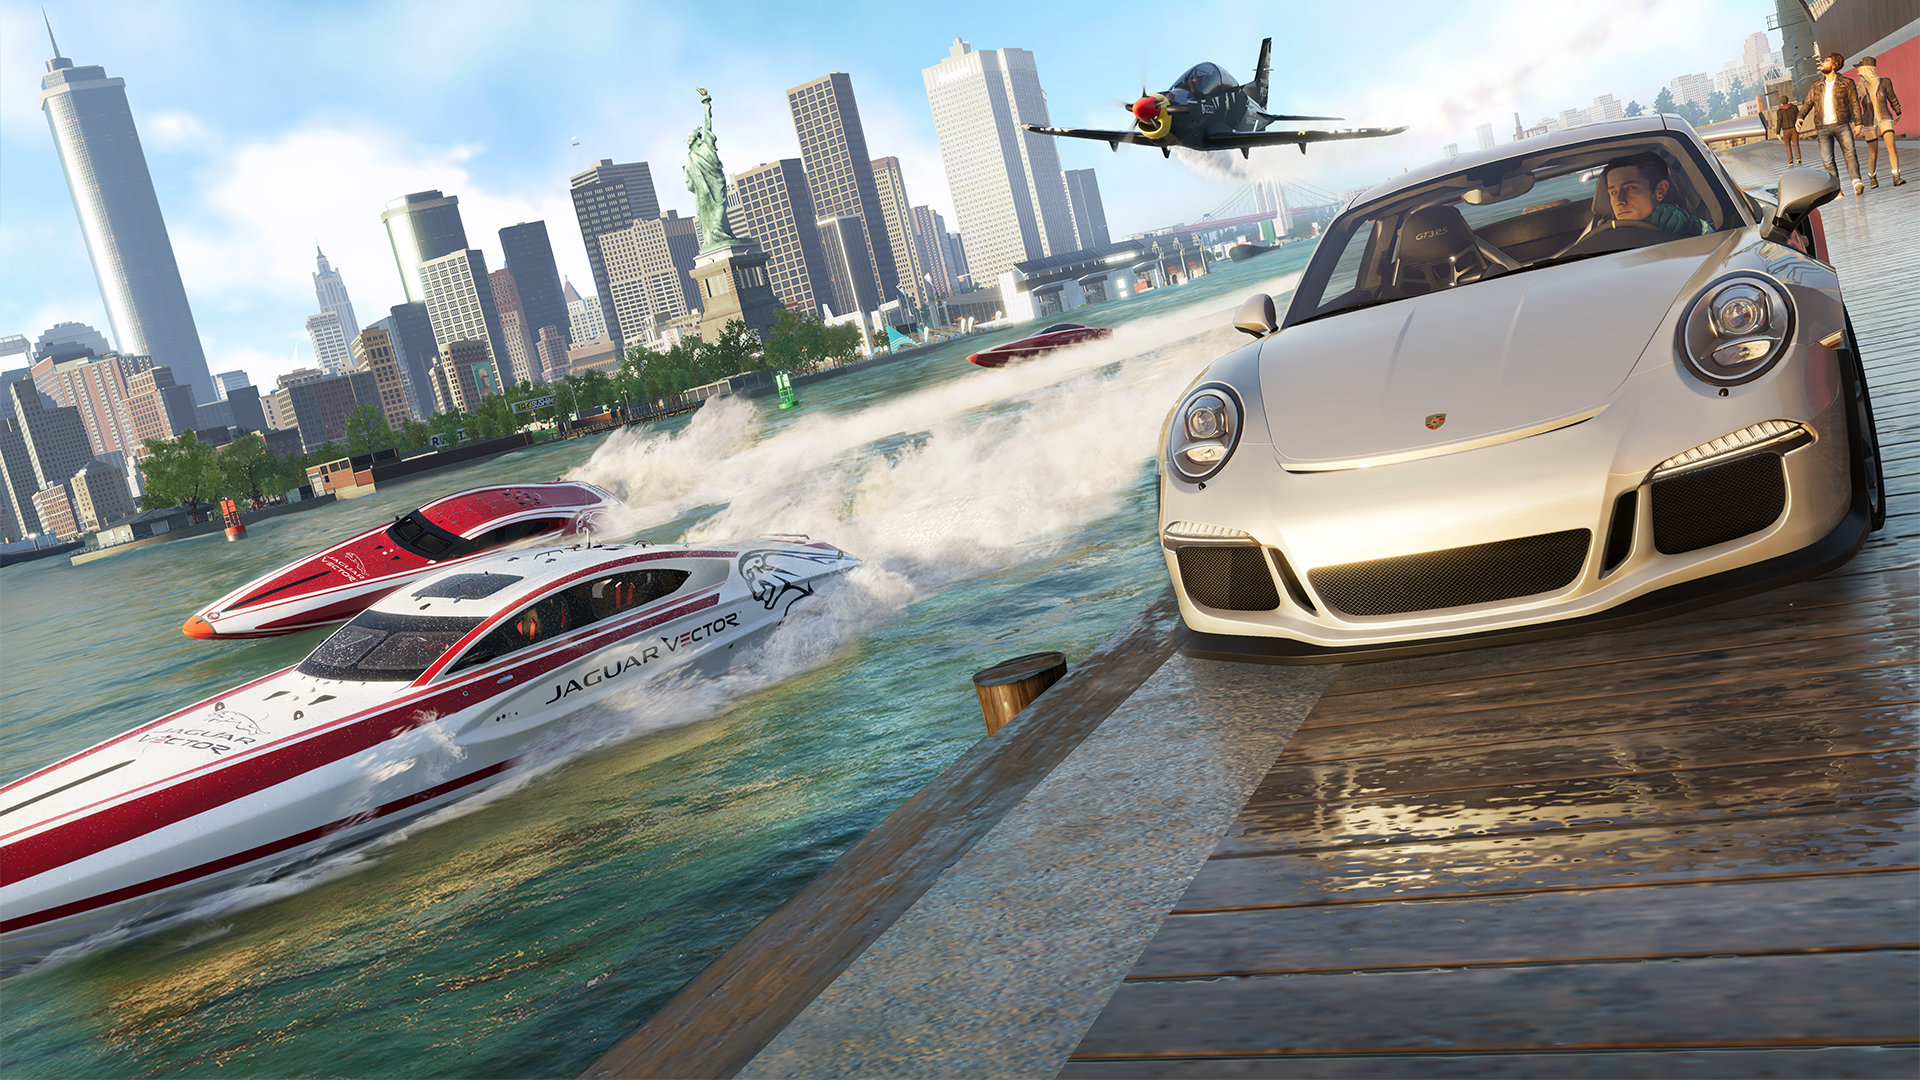 The Crew 2 looks absolutely stunning in motion